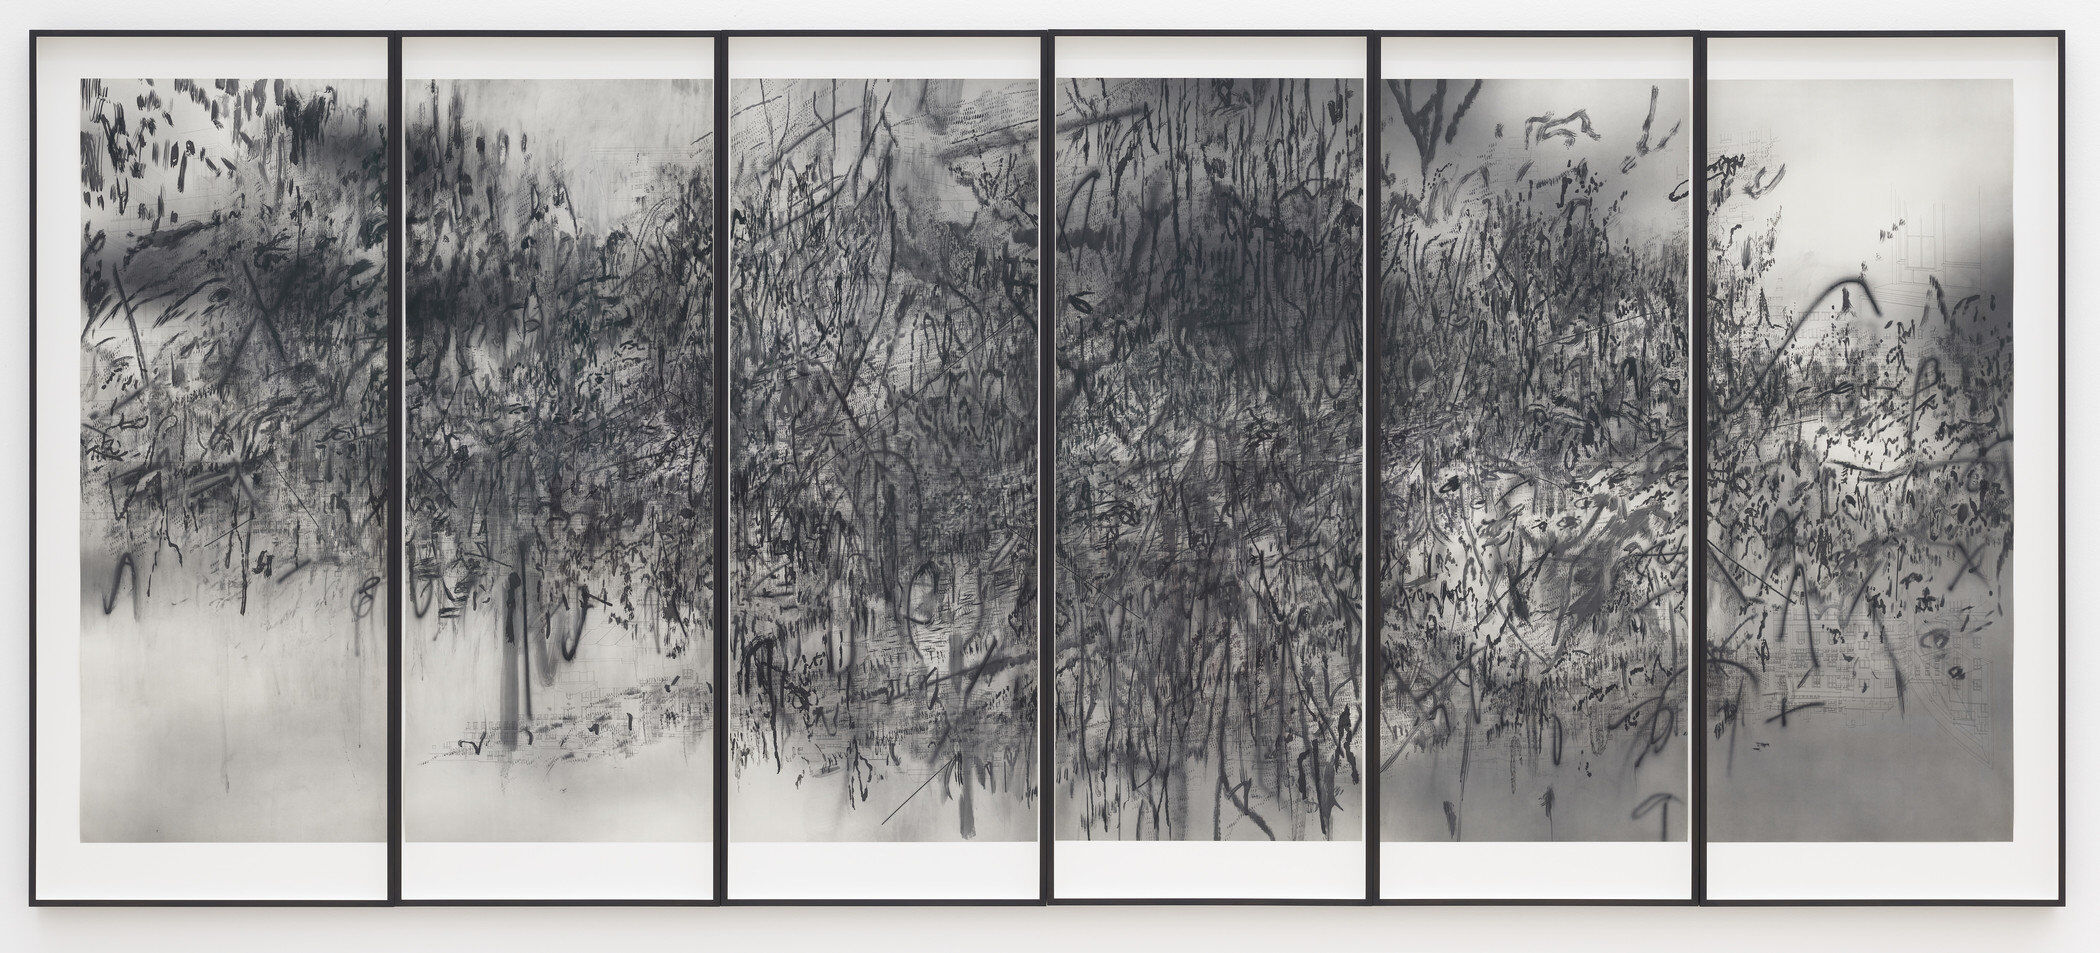 Julie Mehretu retrospective at LACMA & Whitney museum